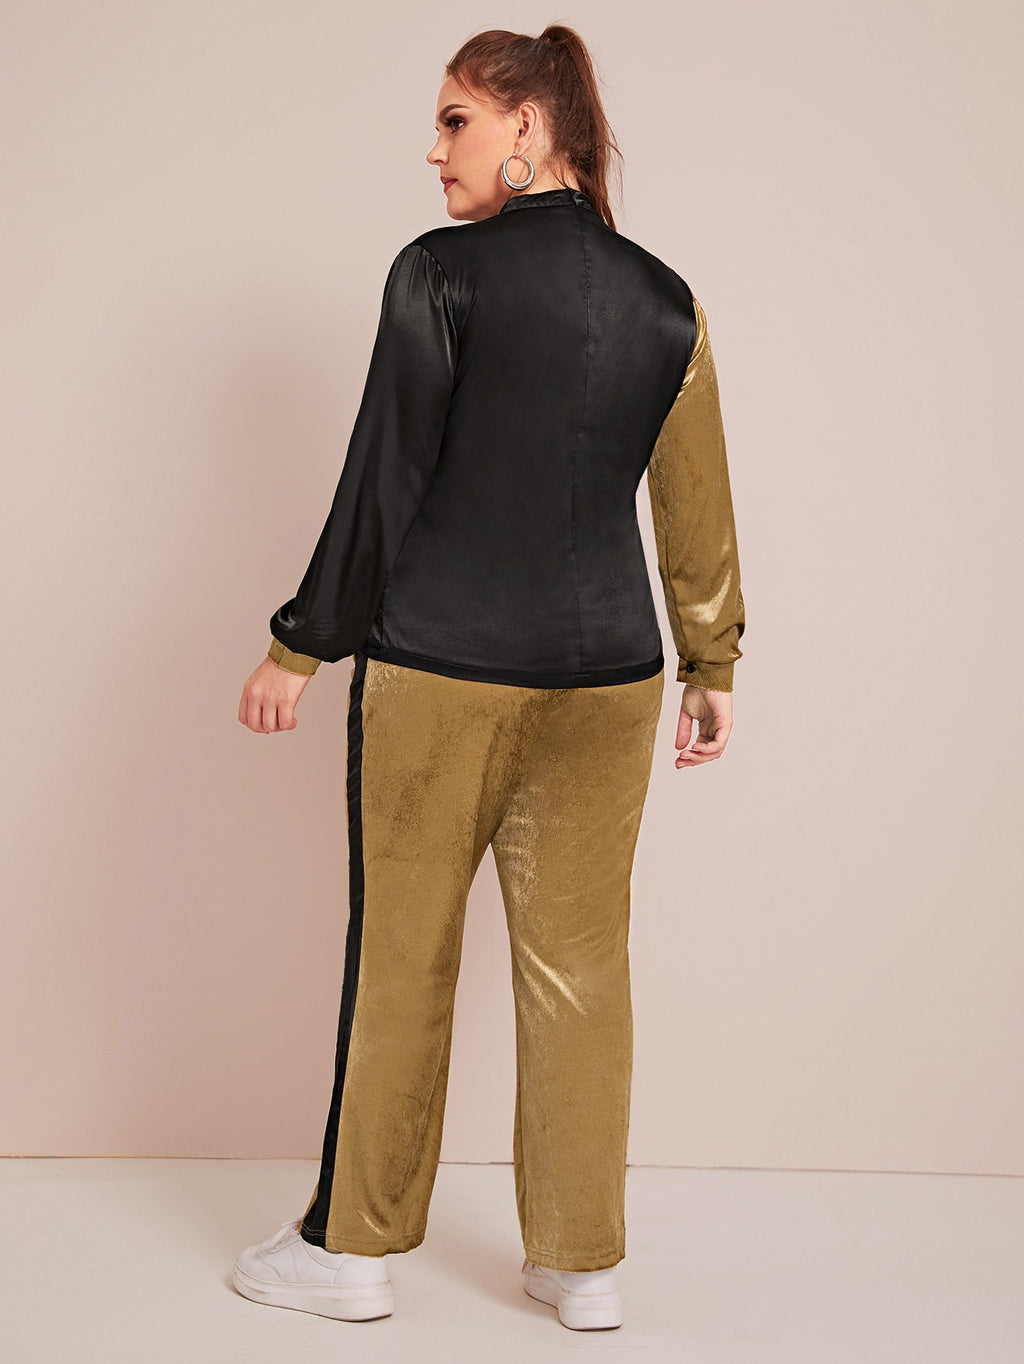 Plus Size Mock Neck Two Tone Velvet Top With Pants